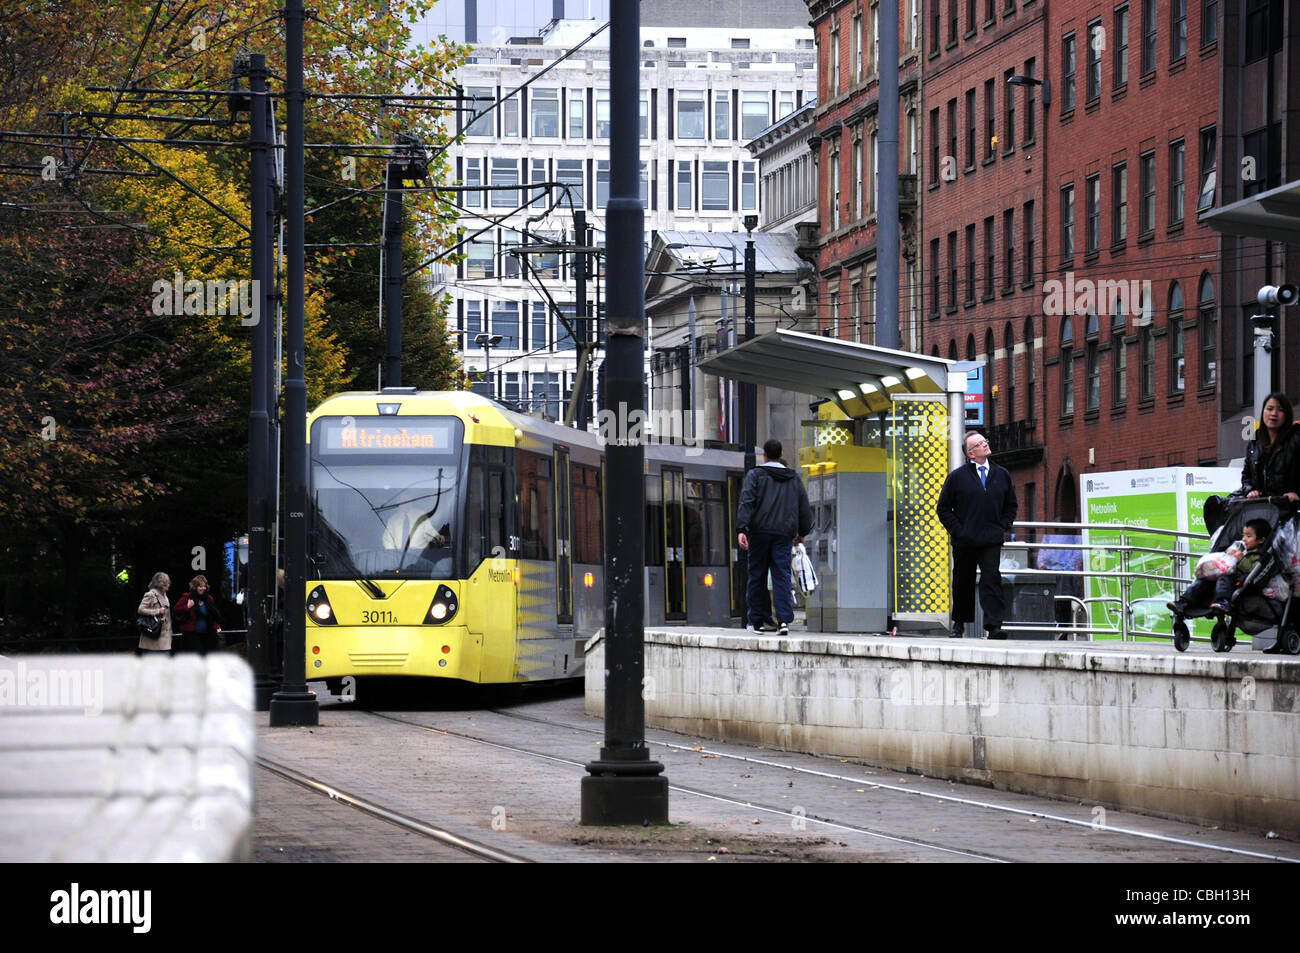 Metrolink tram, Manchester new yellow painted version - Stock Image